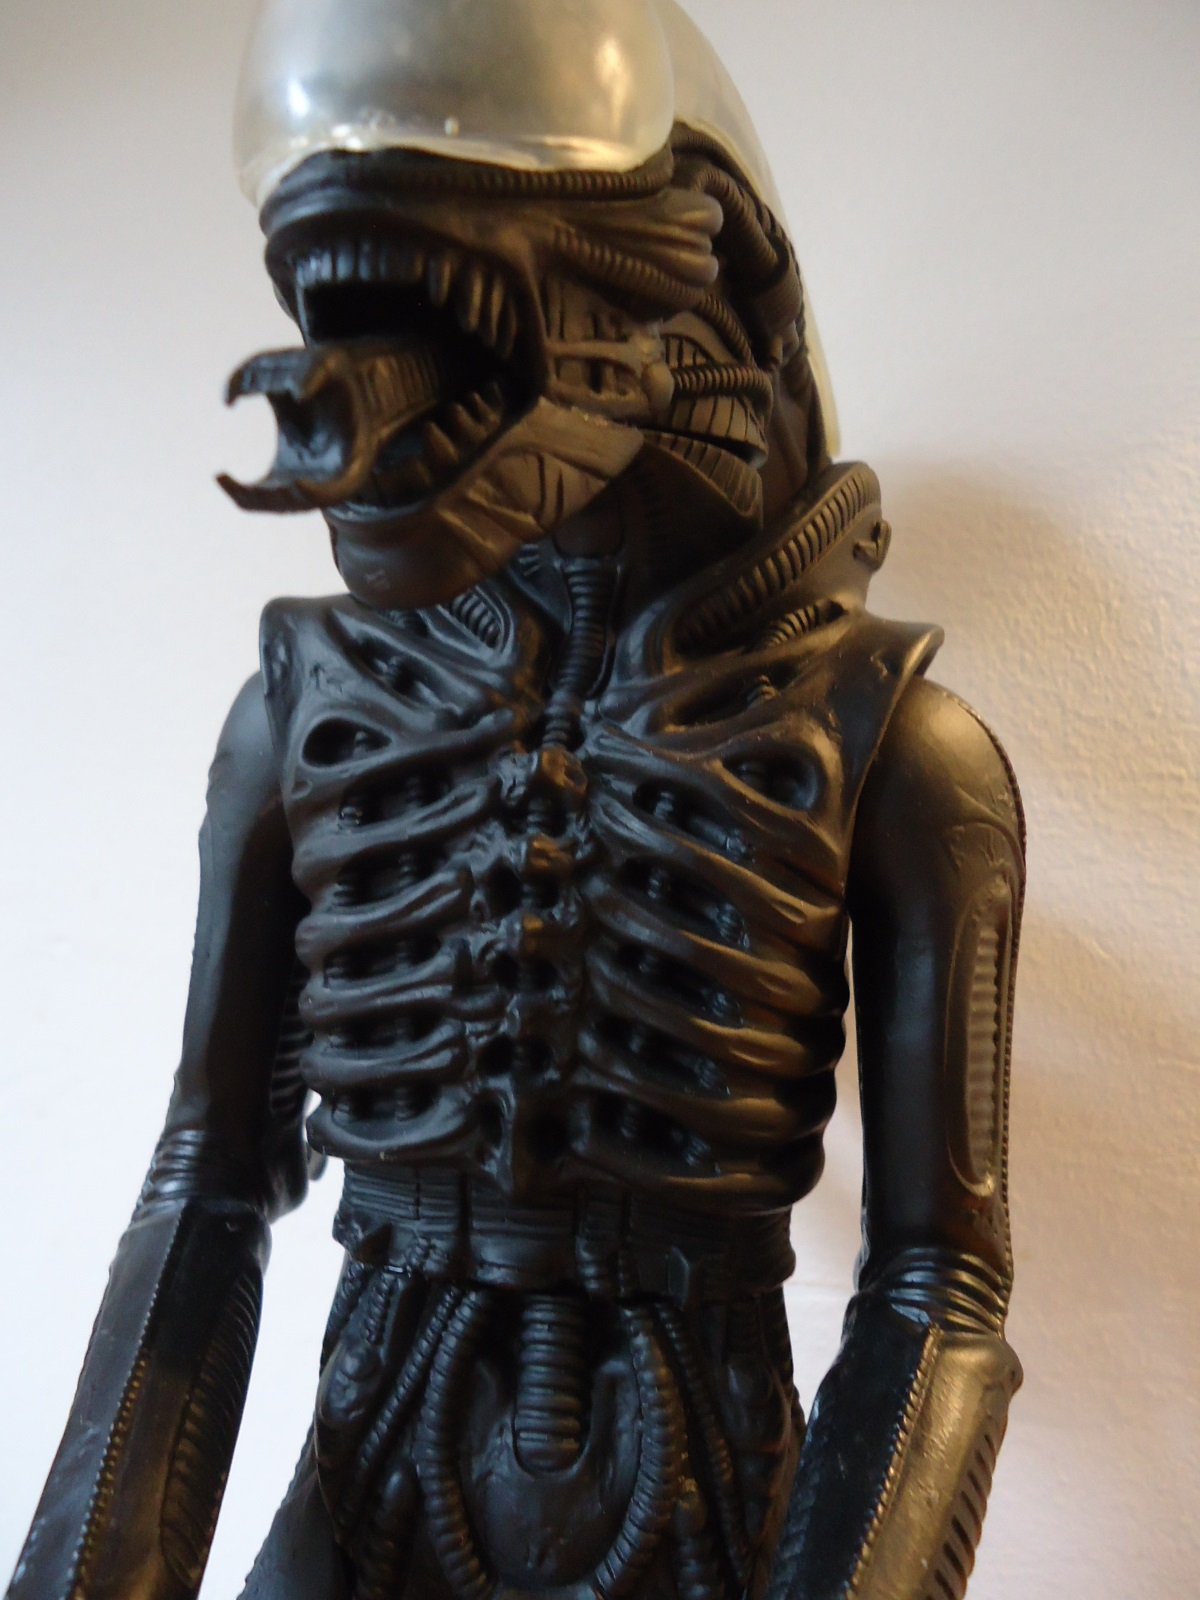 Close up of the torso of the 1991 Halcyon ALIEN model kit.